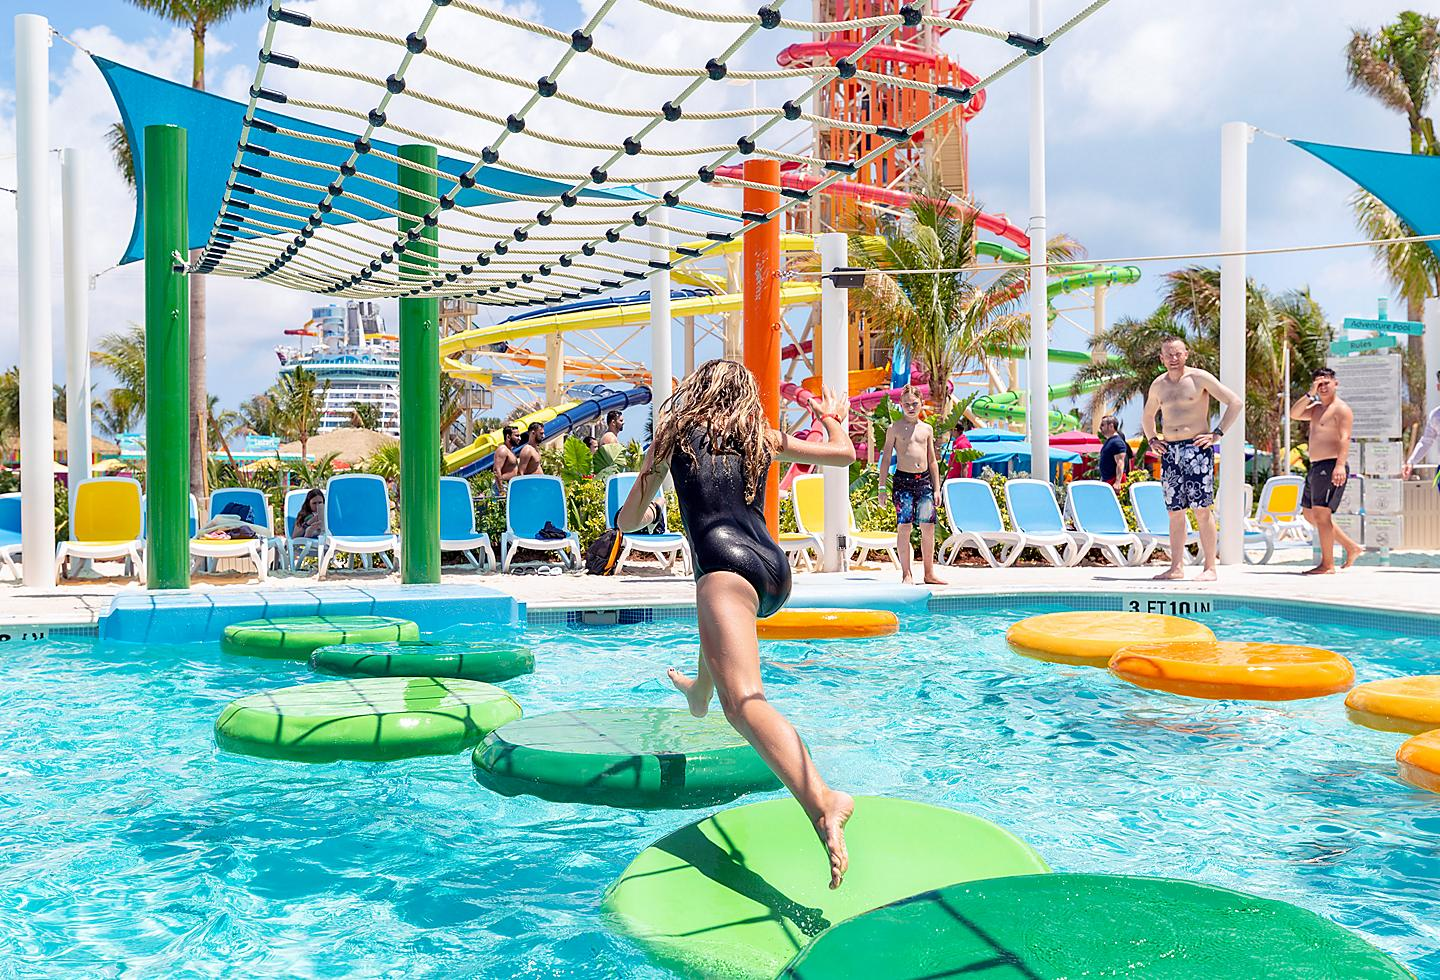 Perfect Day Coco Cay Girl Jumping on Obstacle Course